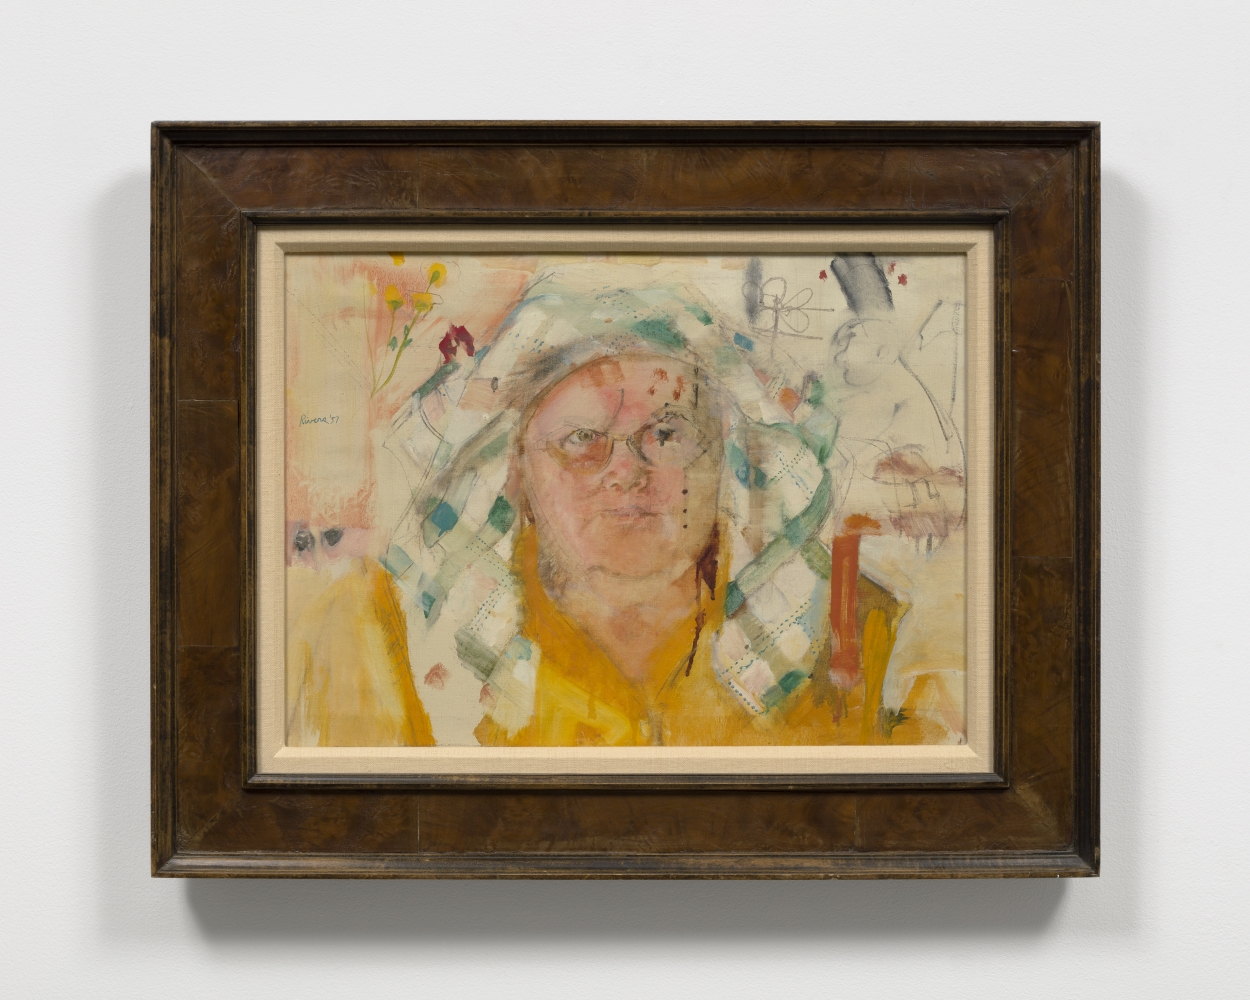 Framed oil on canvas work by Larry Rivers featuring the head of woman in a yellow shirt with a green checkered scarf around her head